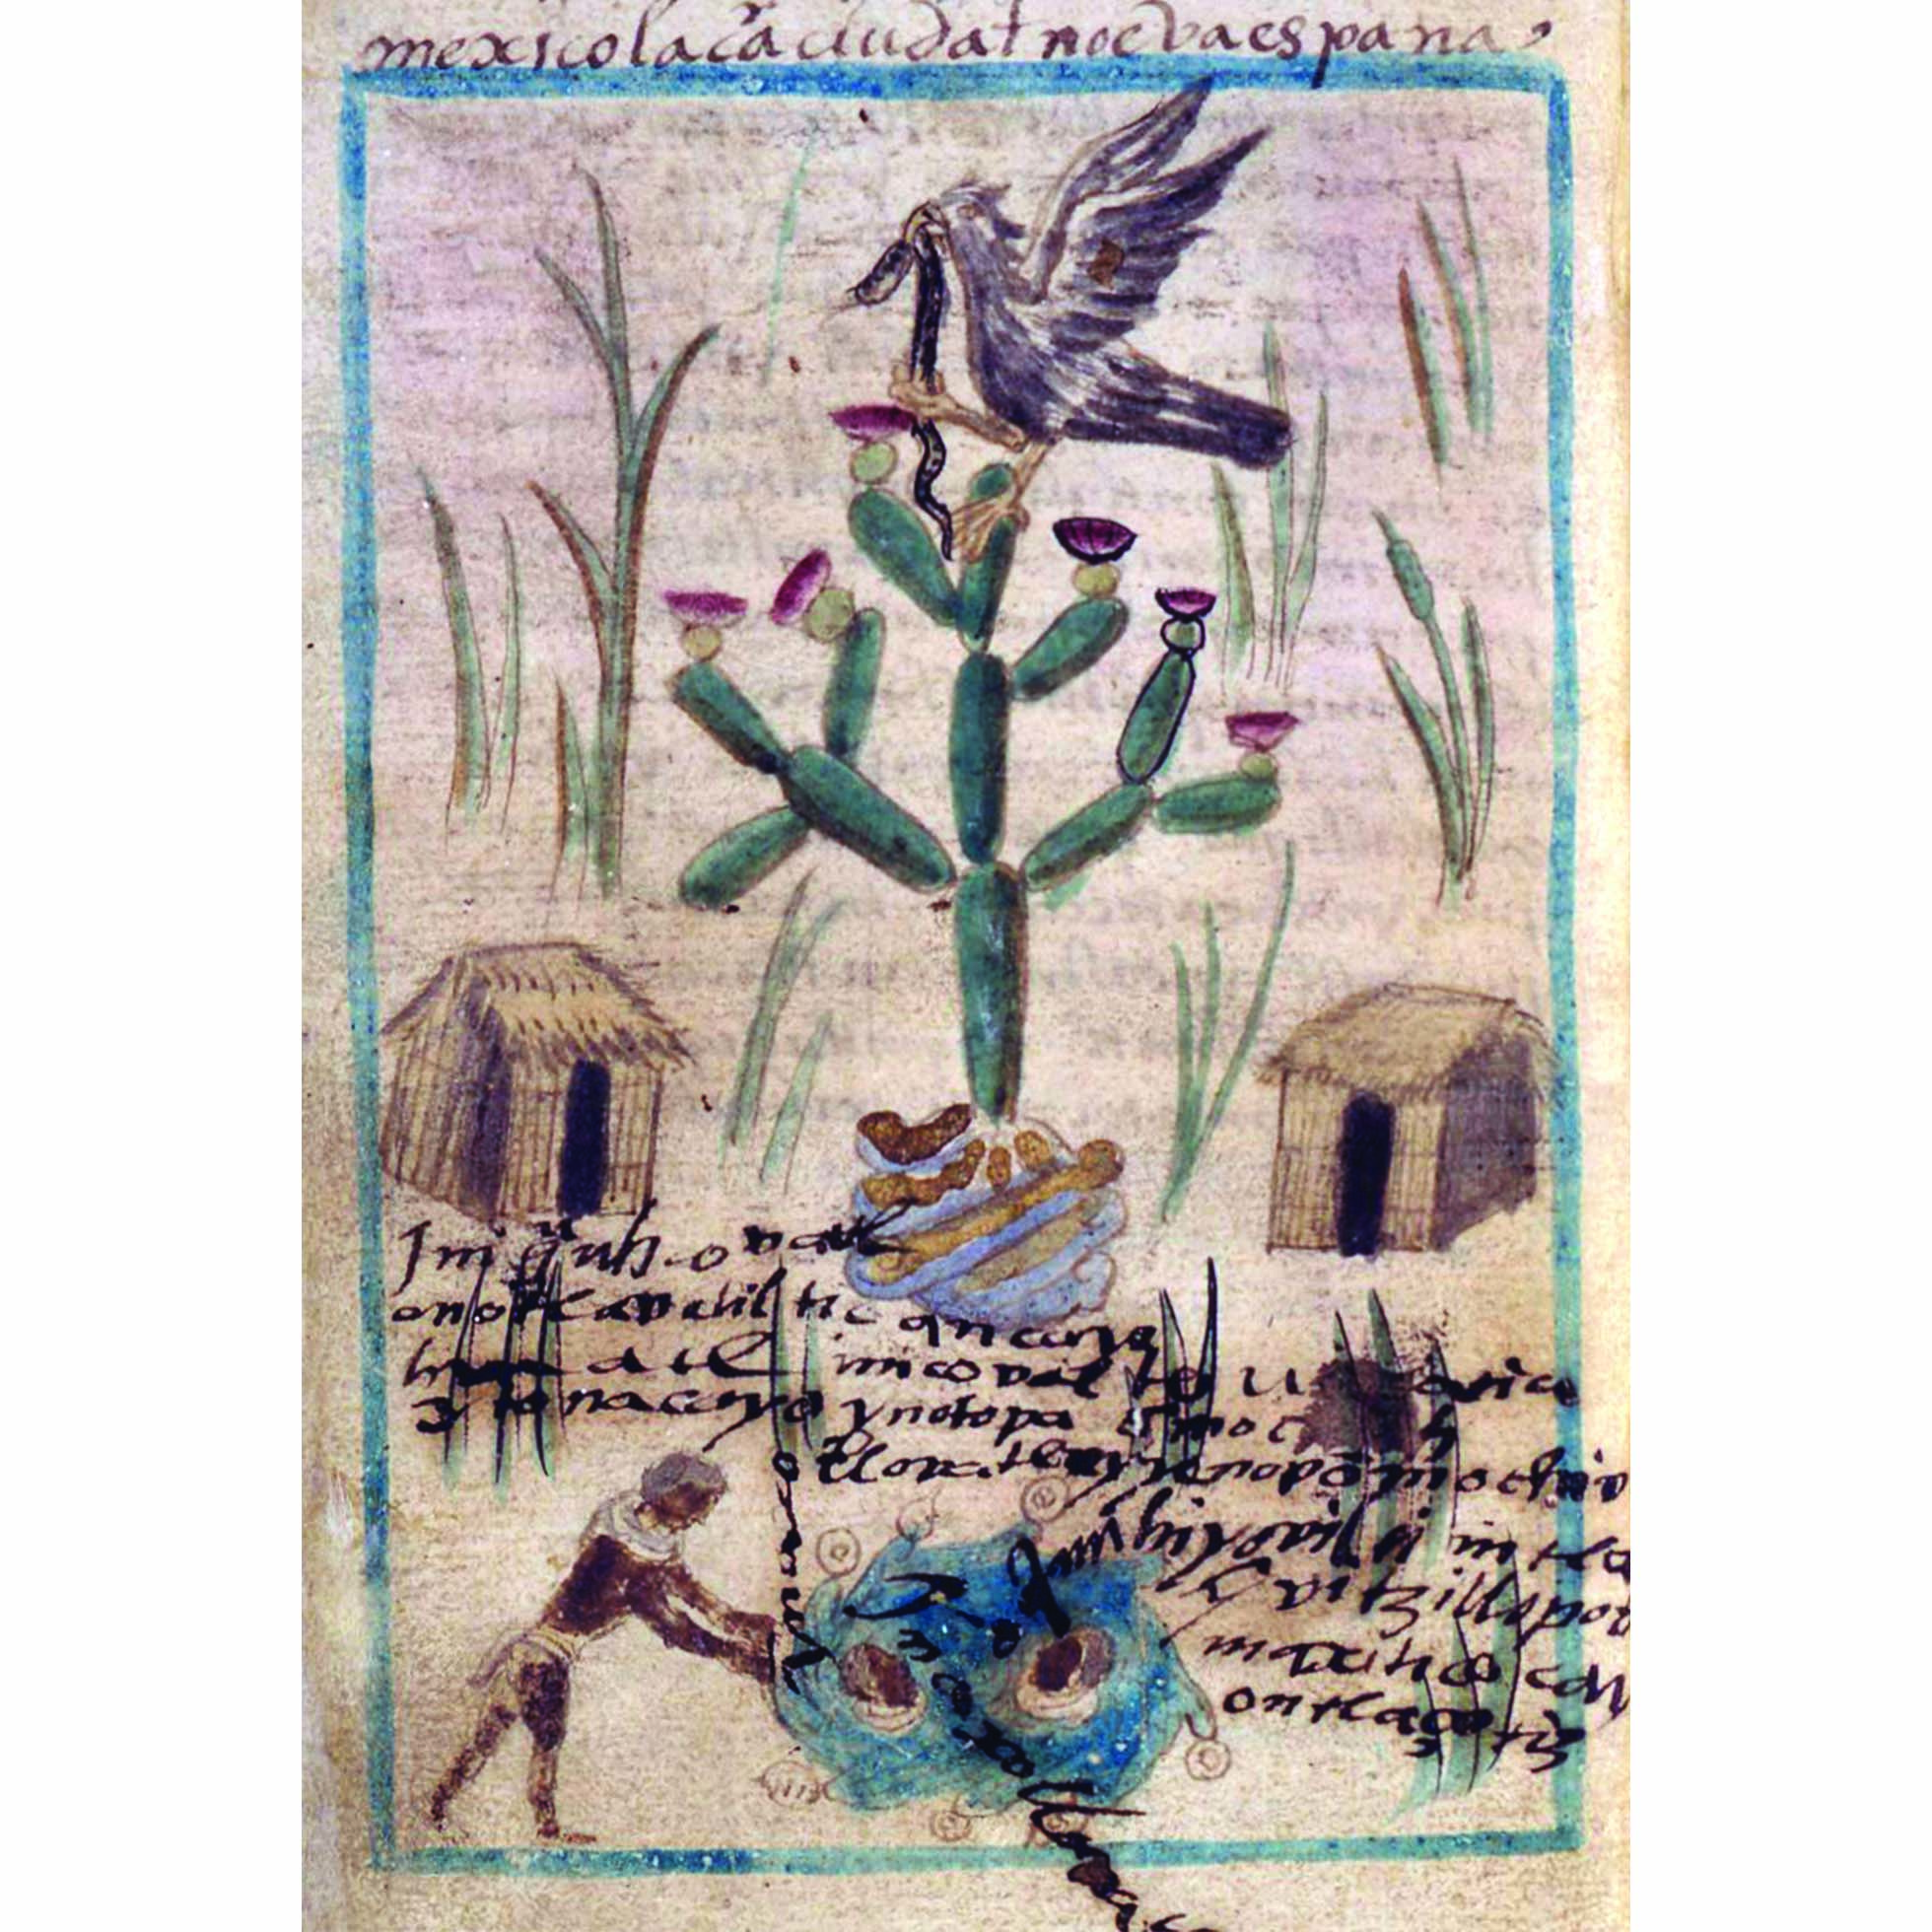 Page from the Aubin Codex, showing writing and illustrations of a bird, cactus, houses and a man.